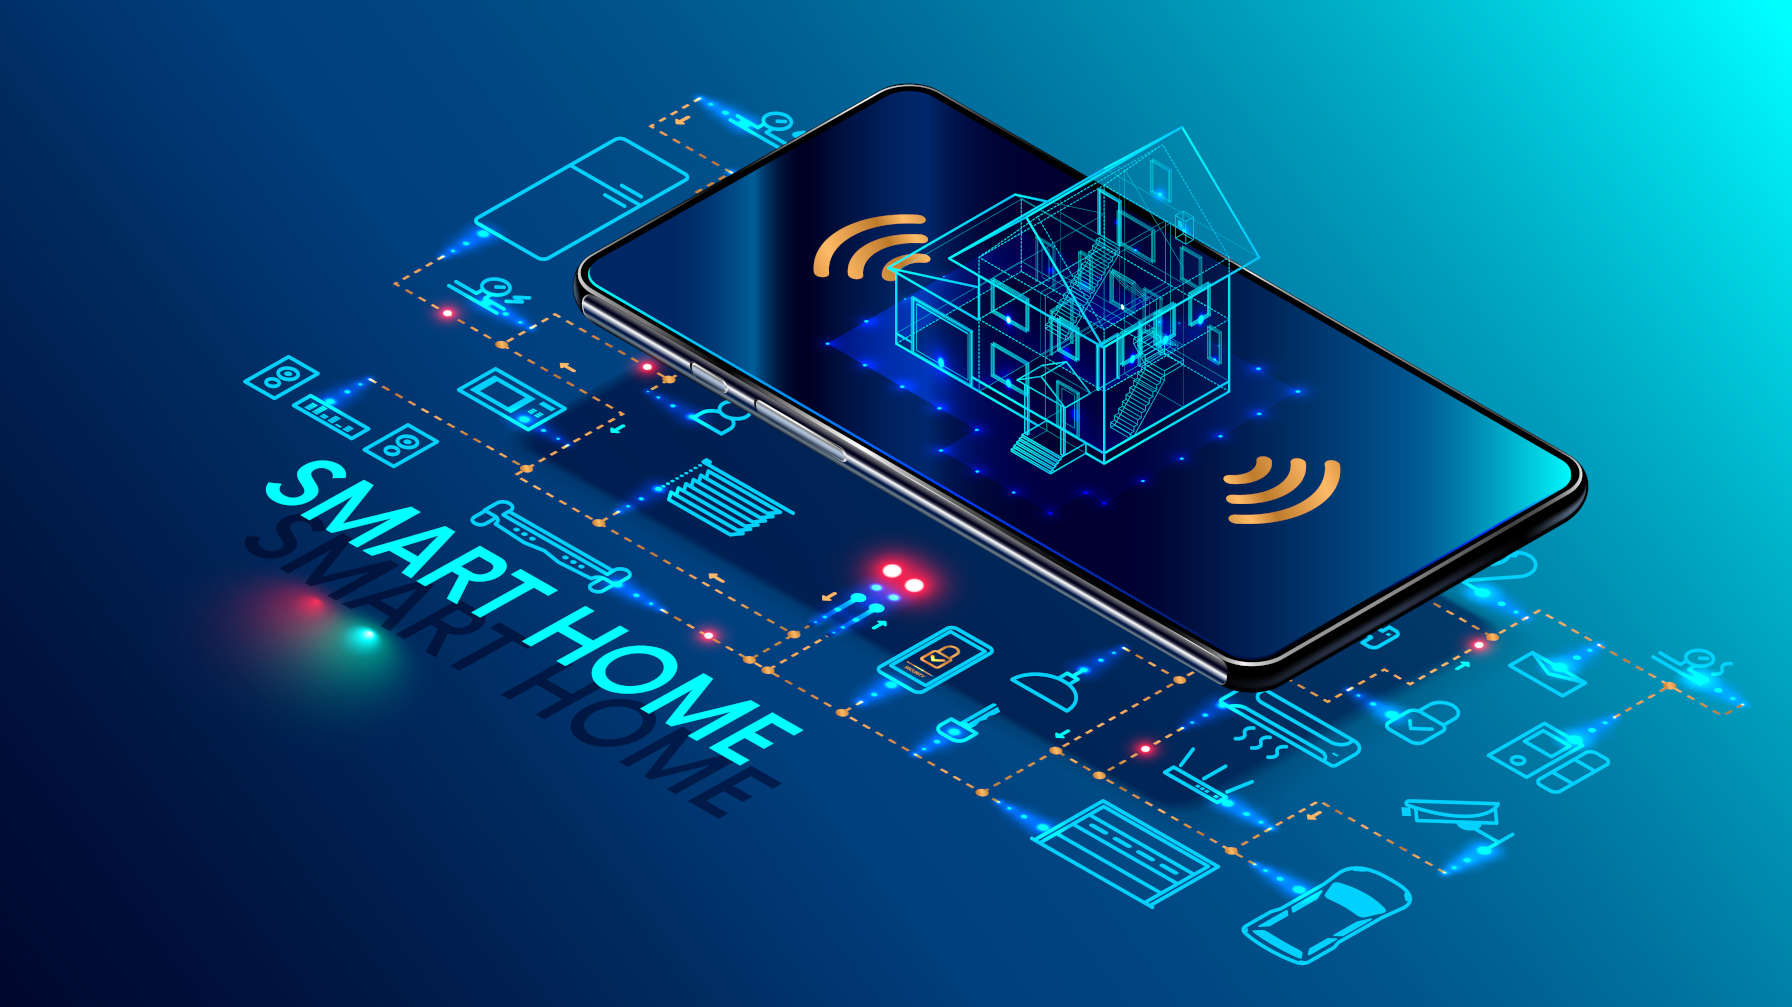 What is the difference between home automation and the Internet of Things?